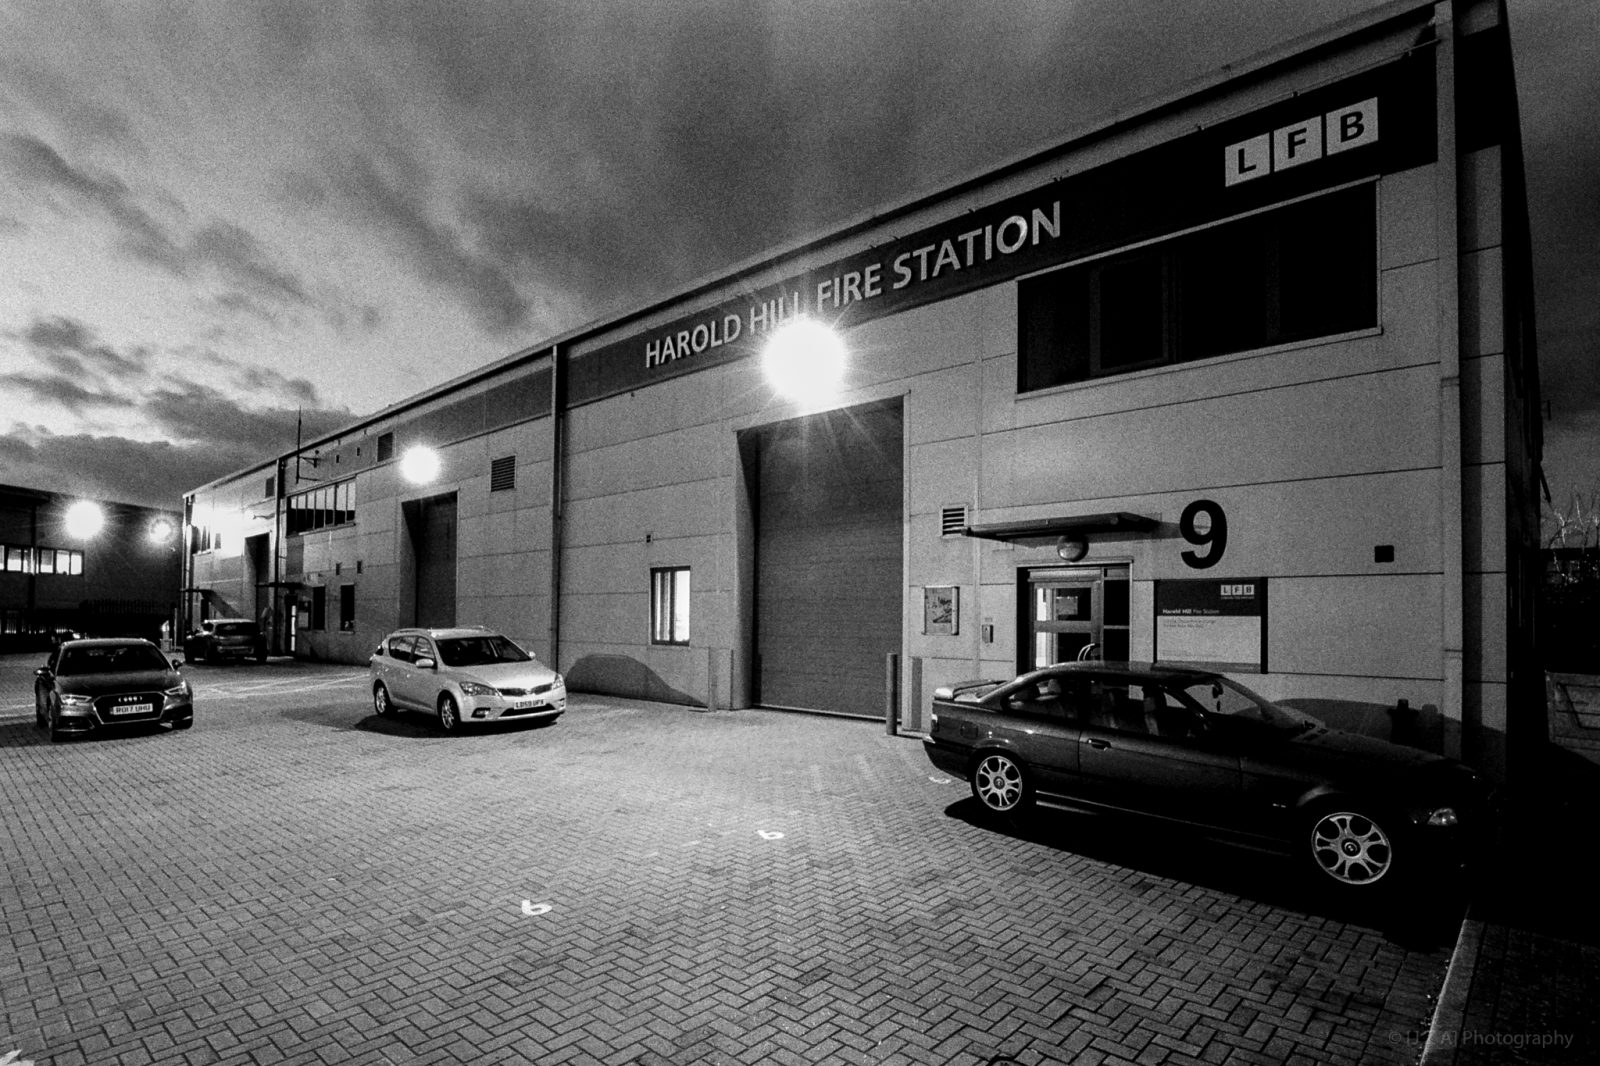 Harold Hill  Fire Station